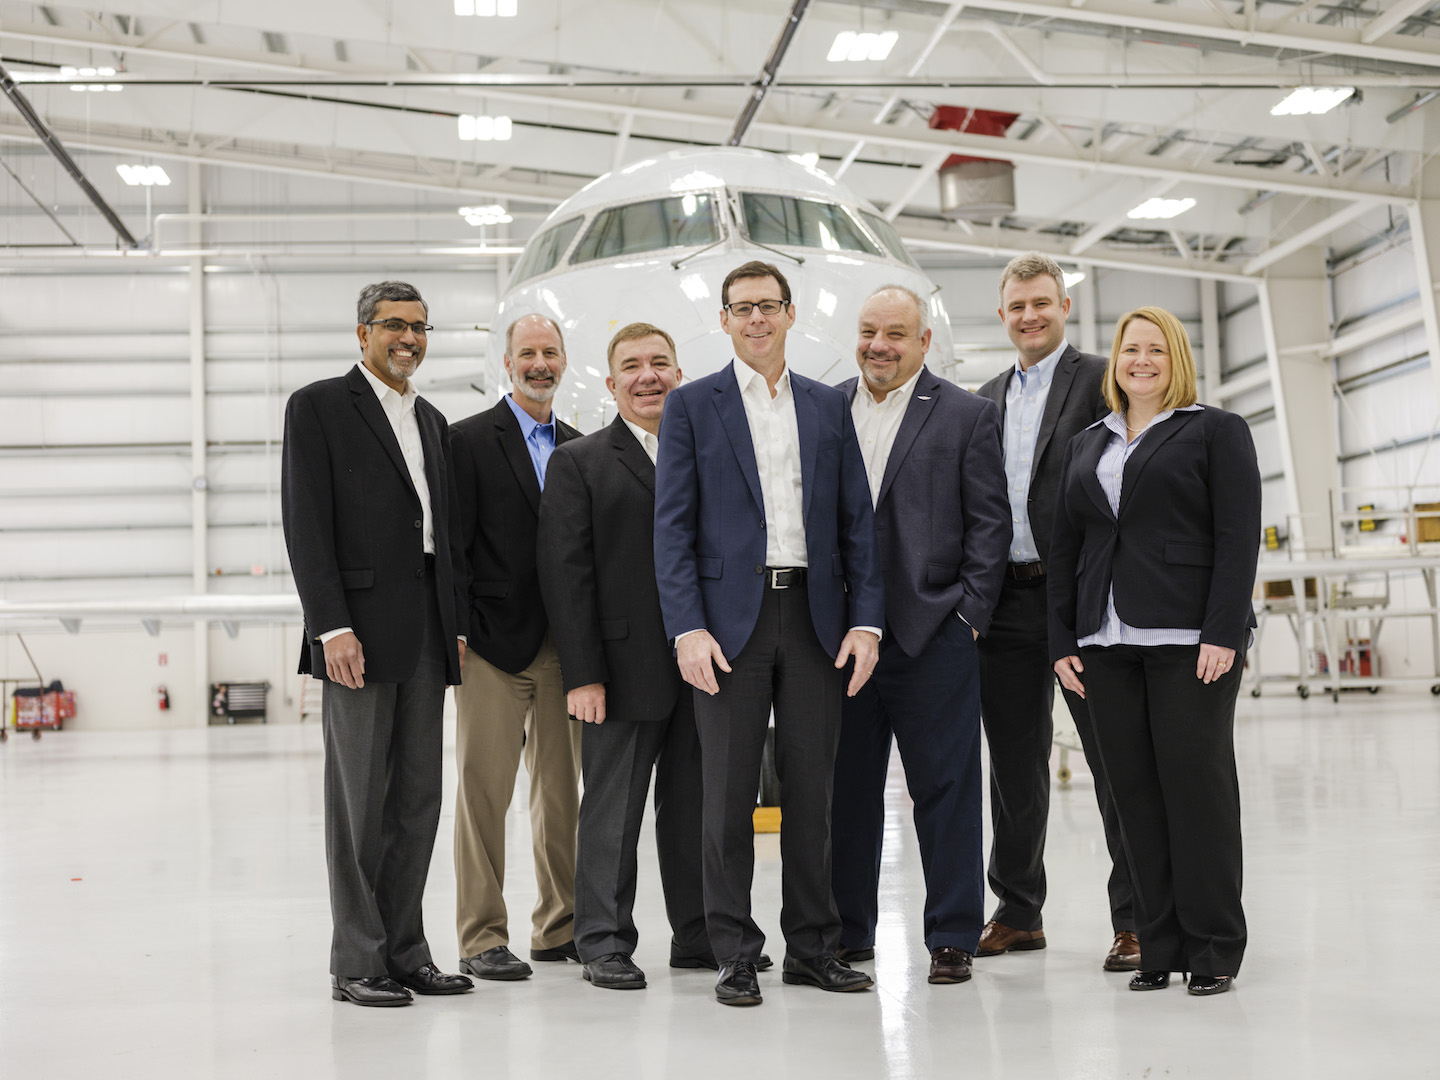 Dion Flannery, President of PSA Airlines, heads the leadership team.